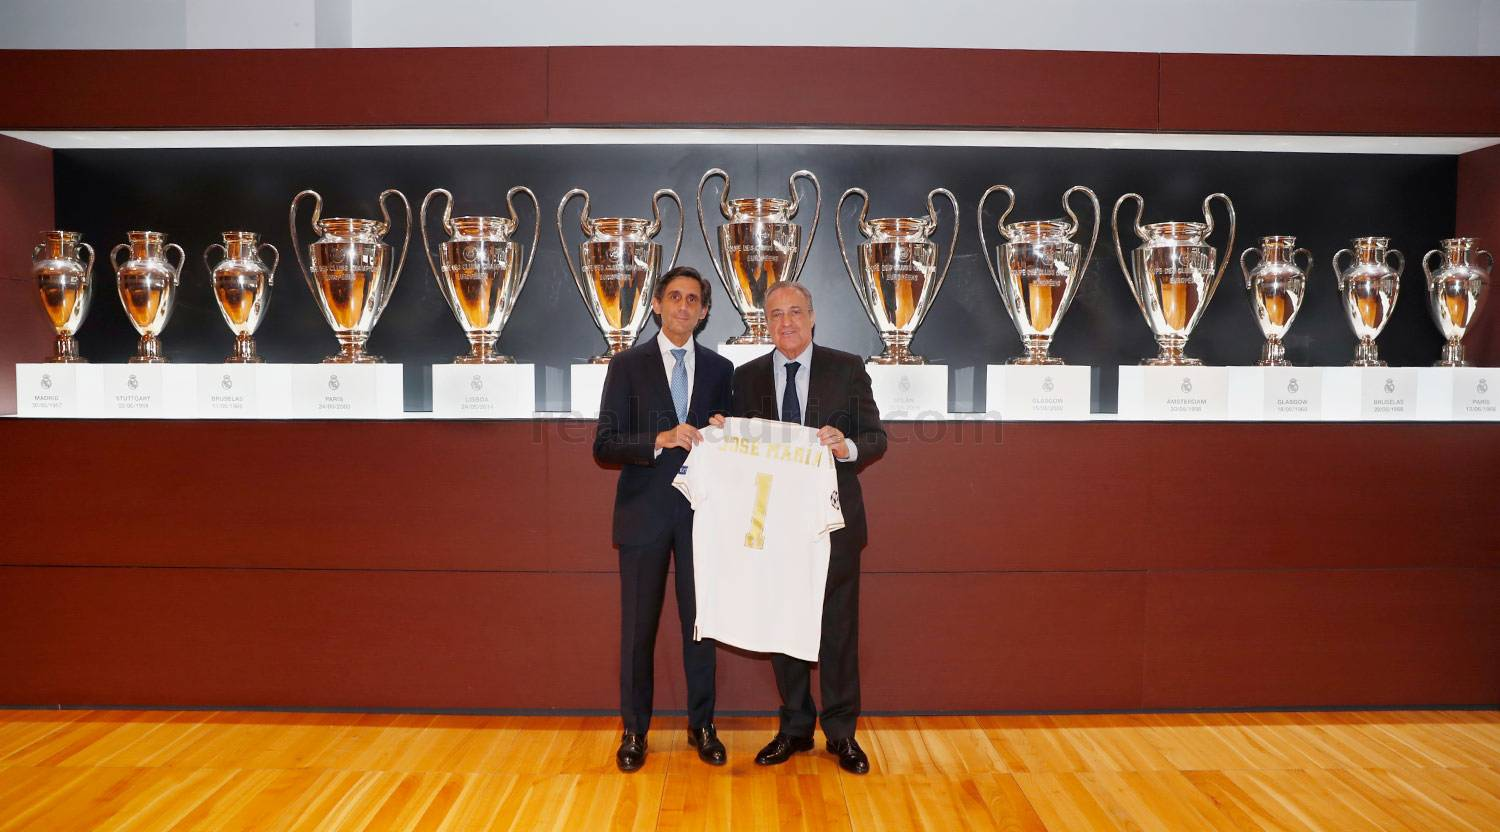 Real Madrid - Acto de graduación de la XIII promoción de la Escuela Universitaria Real Madrid Universidad Europea - 04-07-2019